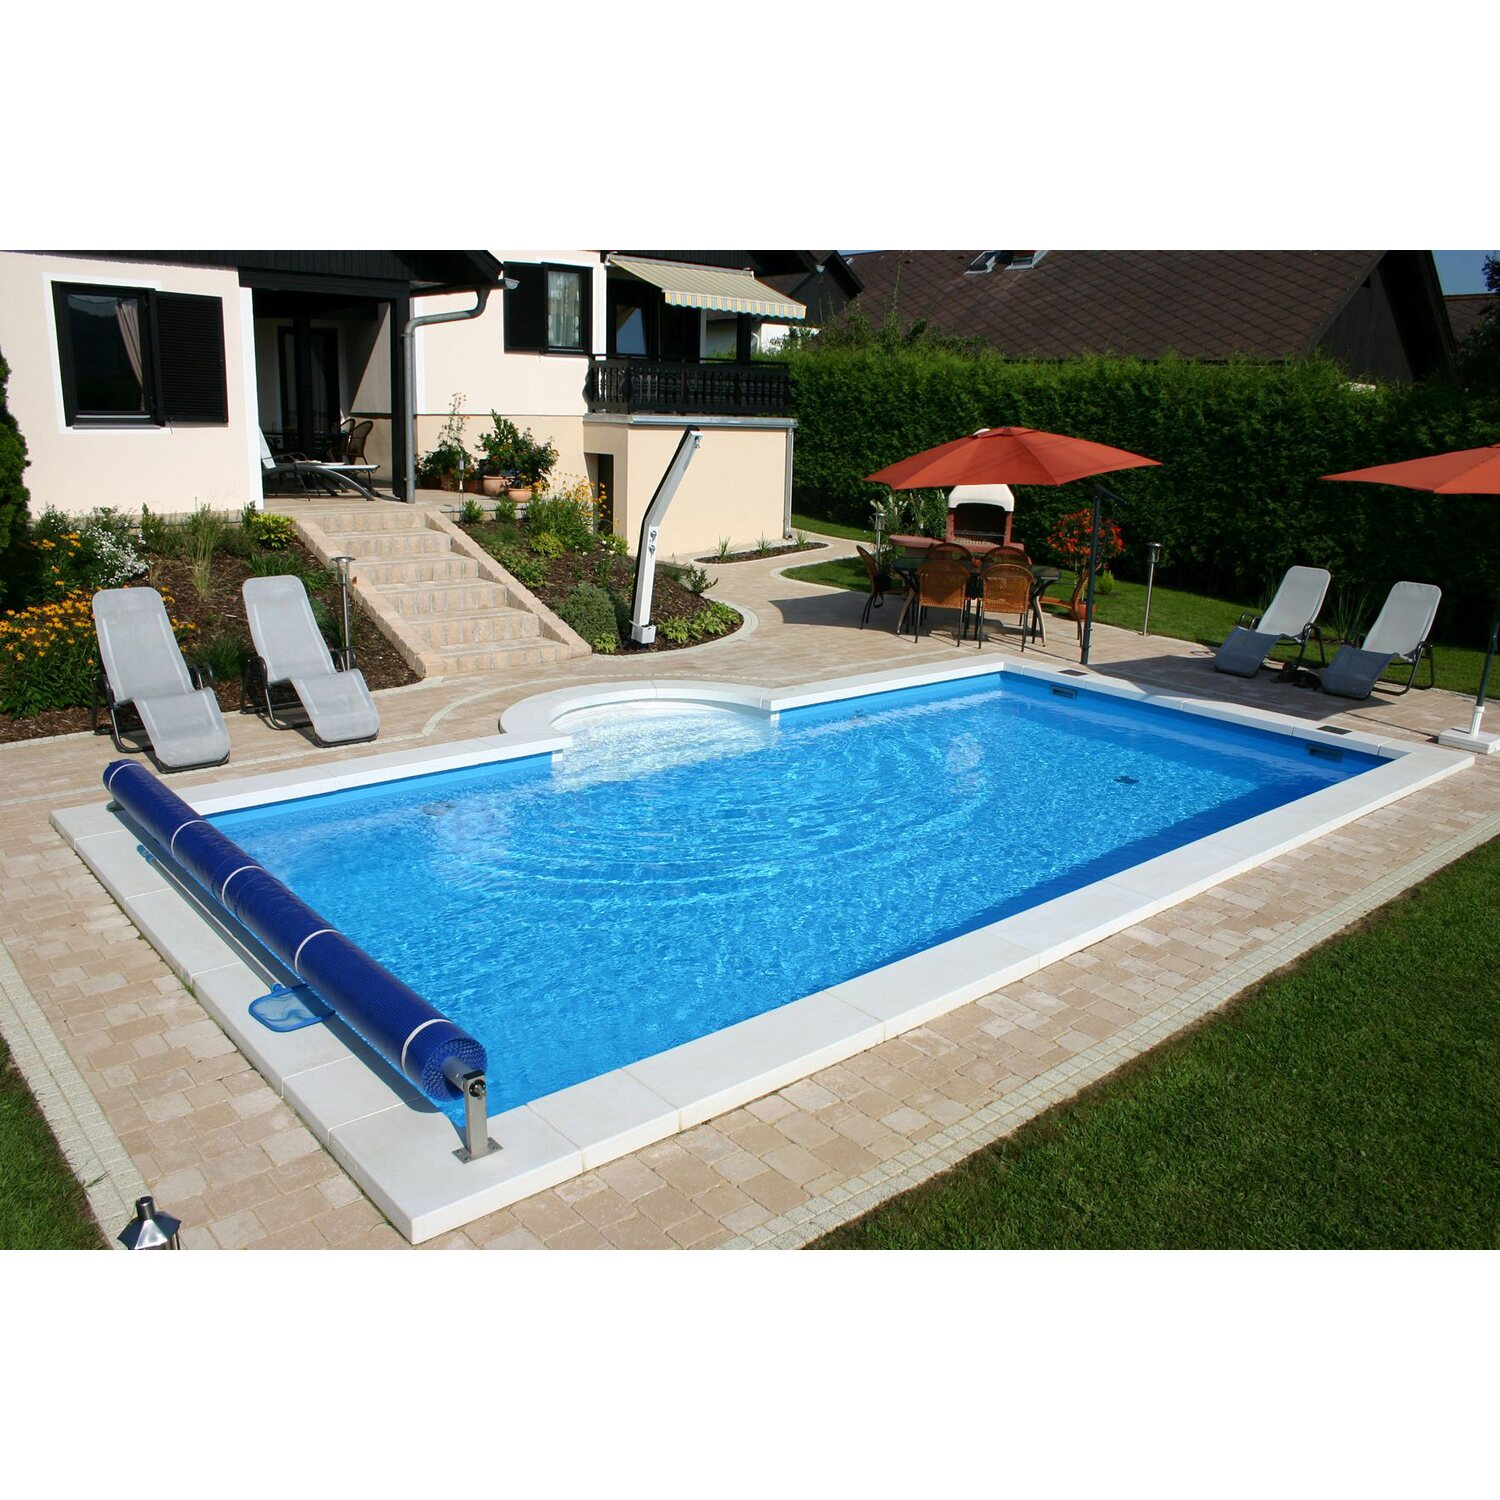 Summer fun styropor pool set london 800 cm x 400 cm x 150 for Obi sandfilteranlage pool